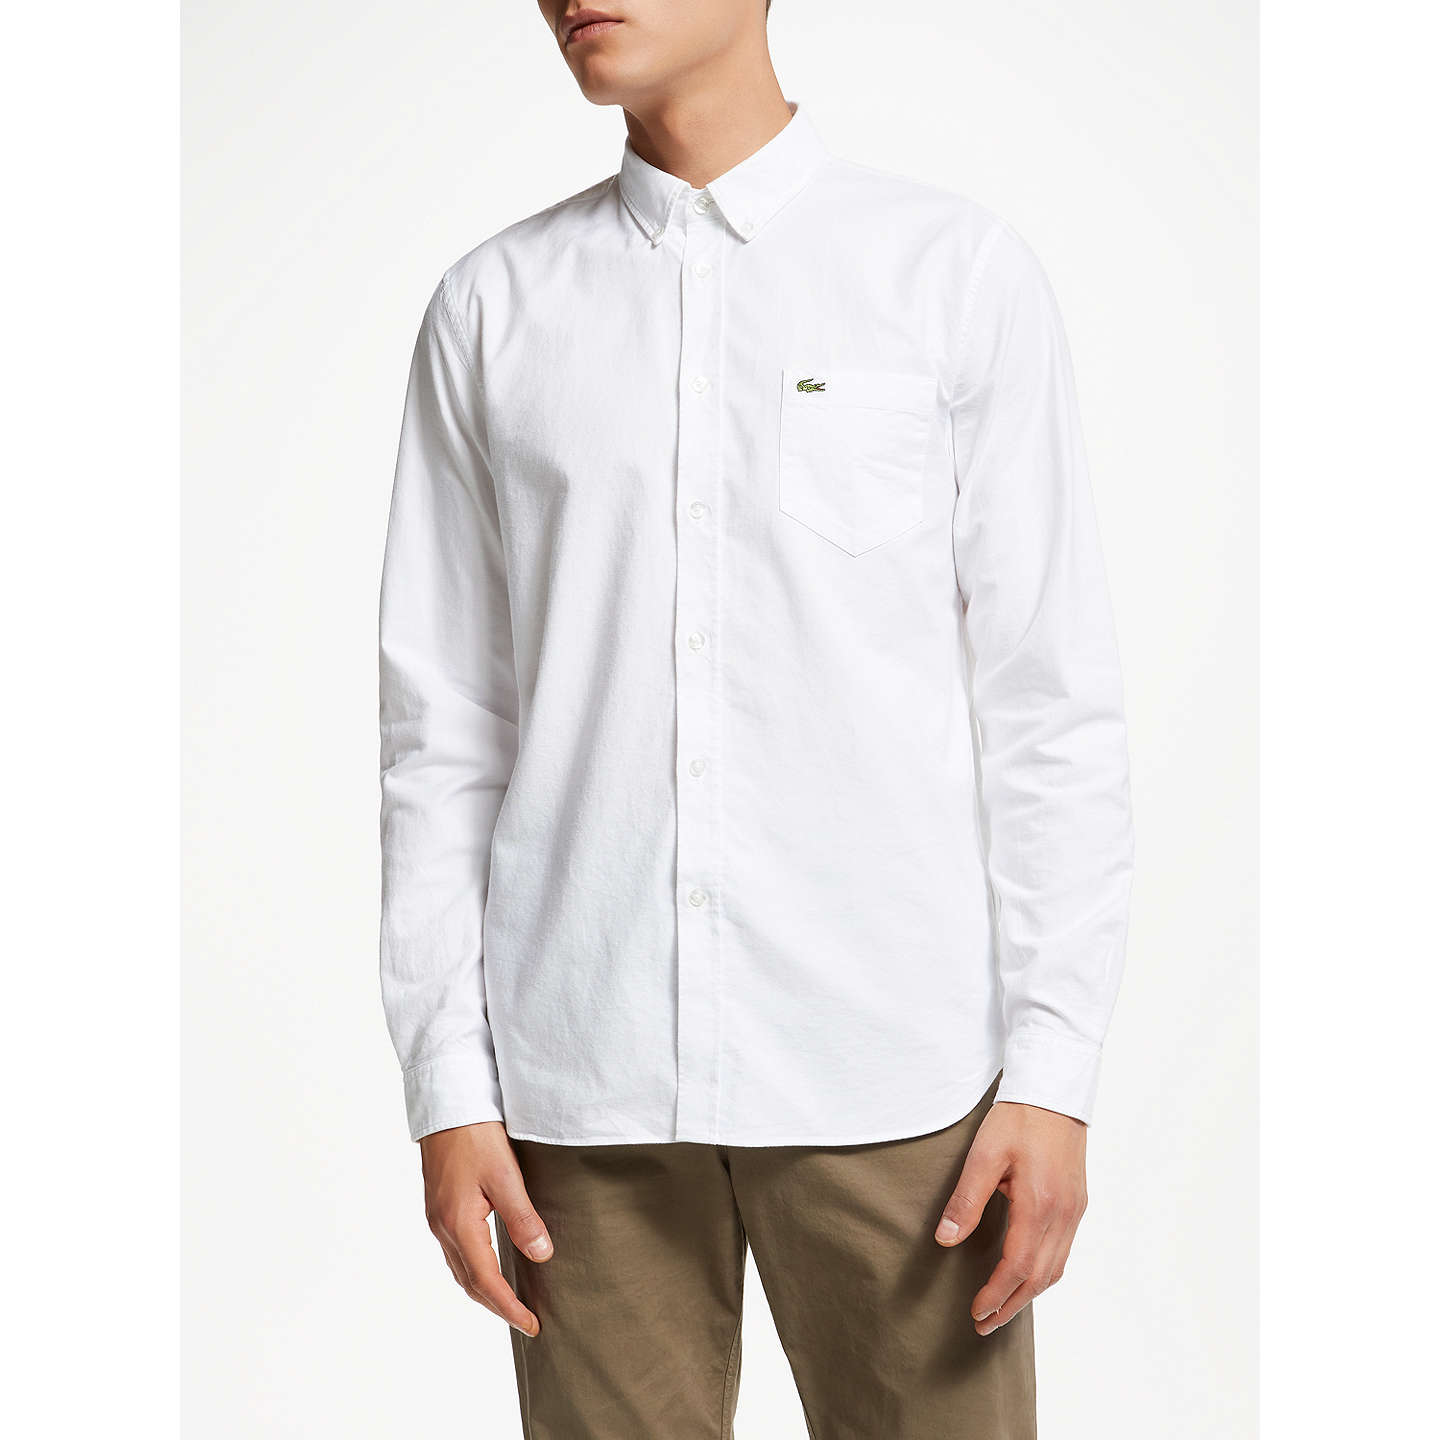 BuyLacoste Long Sleeve Oxford Shirt, White, S Online at johnlewis.com ...